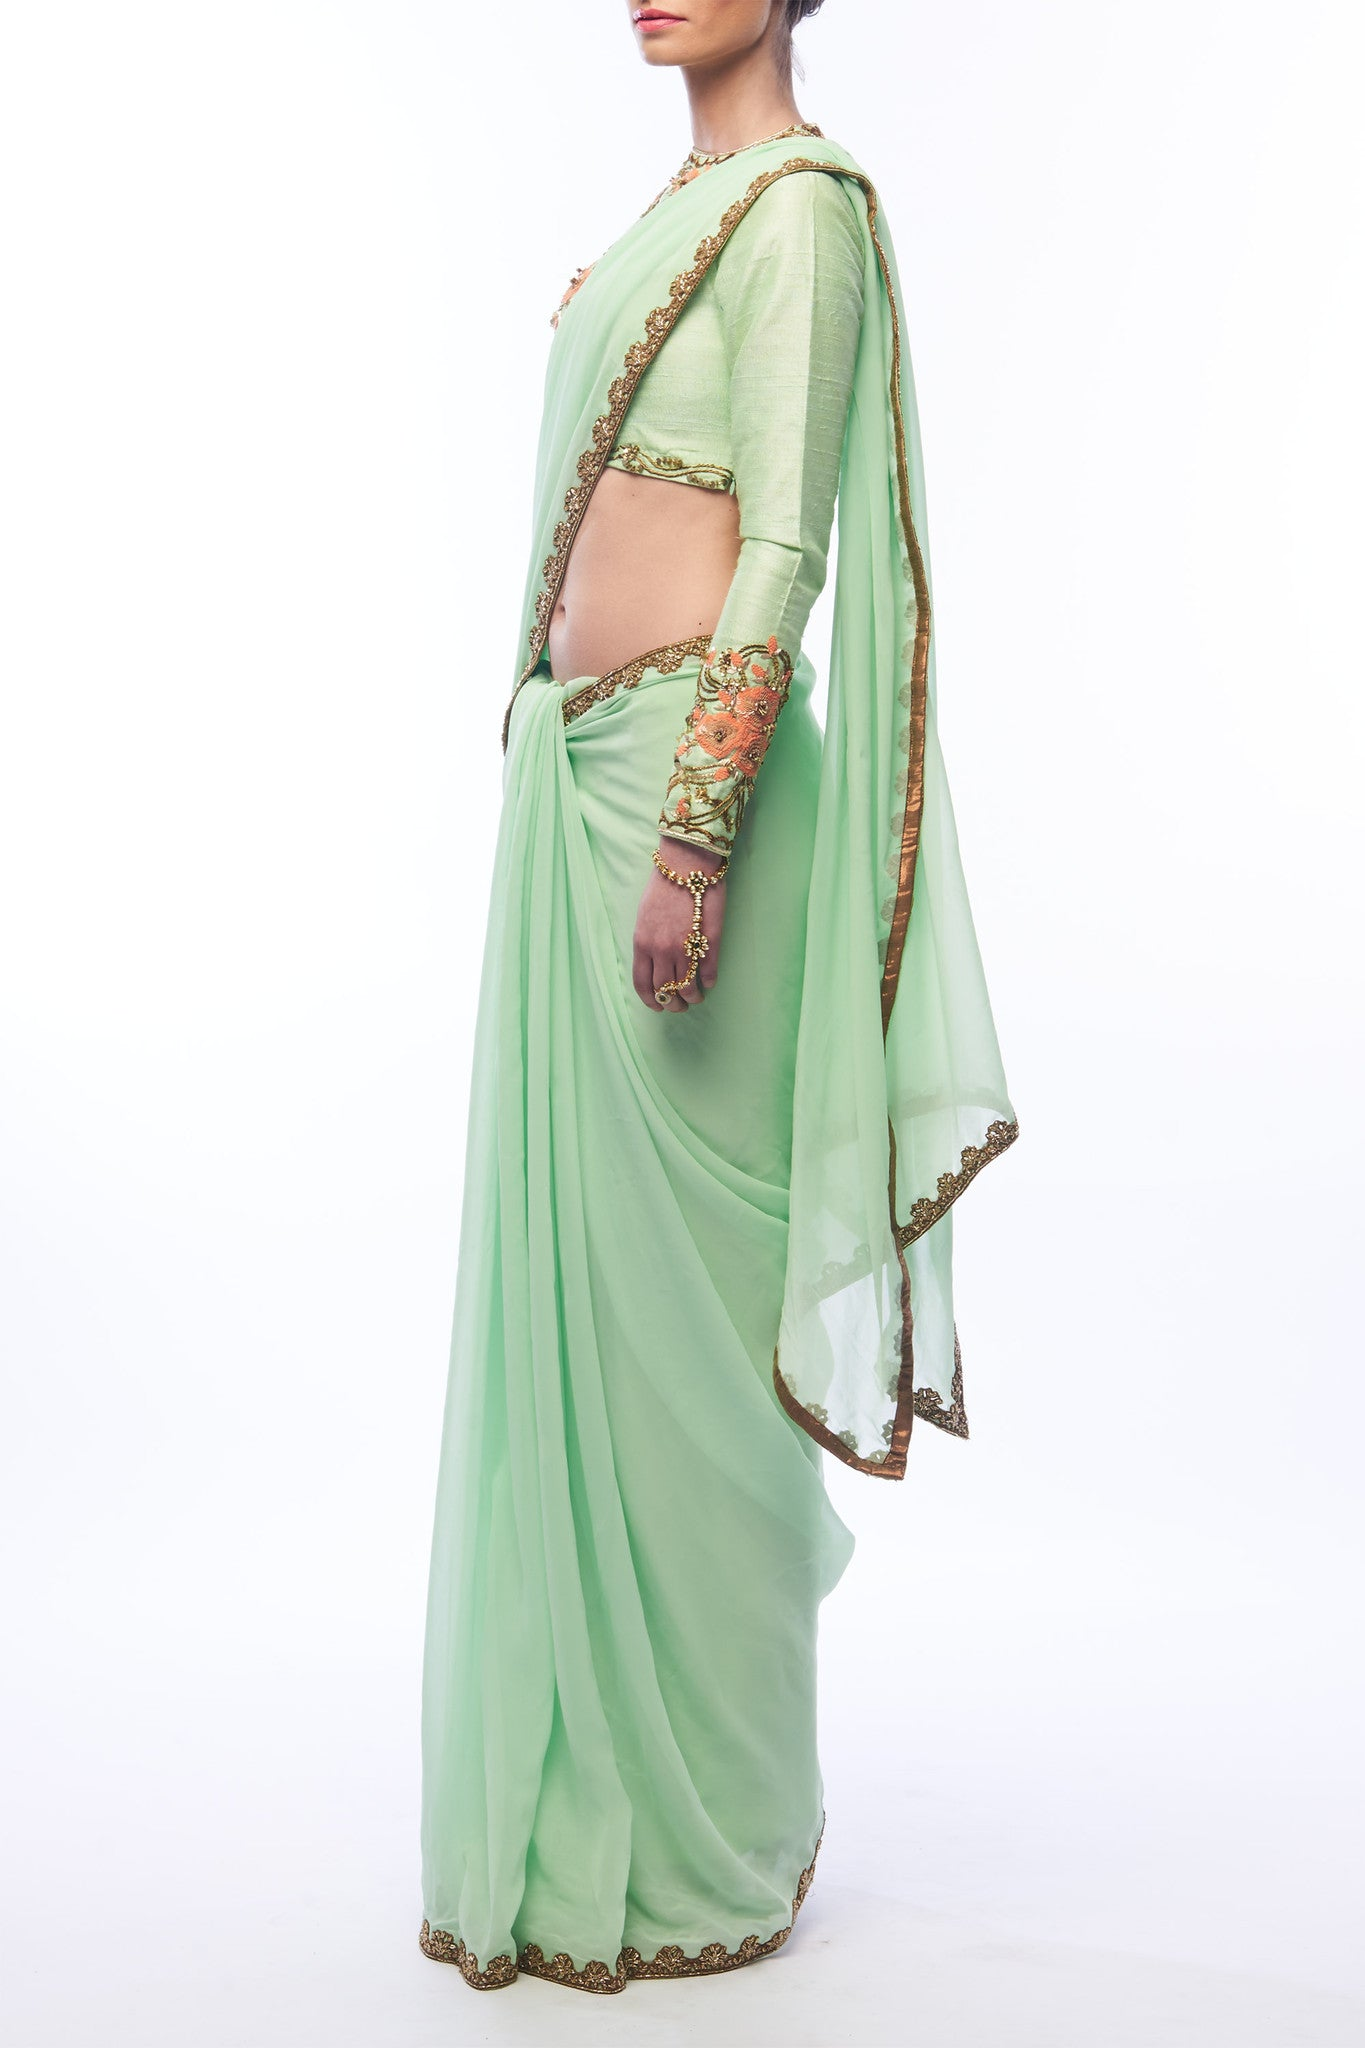 Pistachio Saree and Blouse - One Sleeve